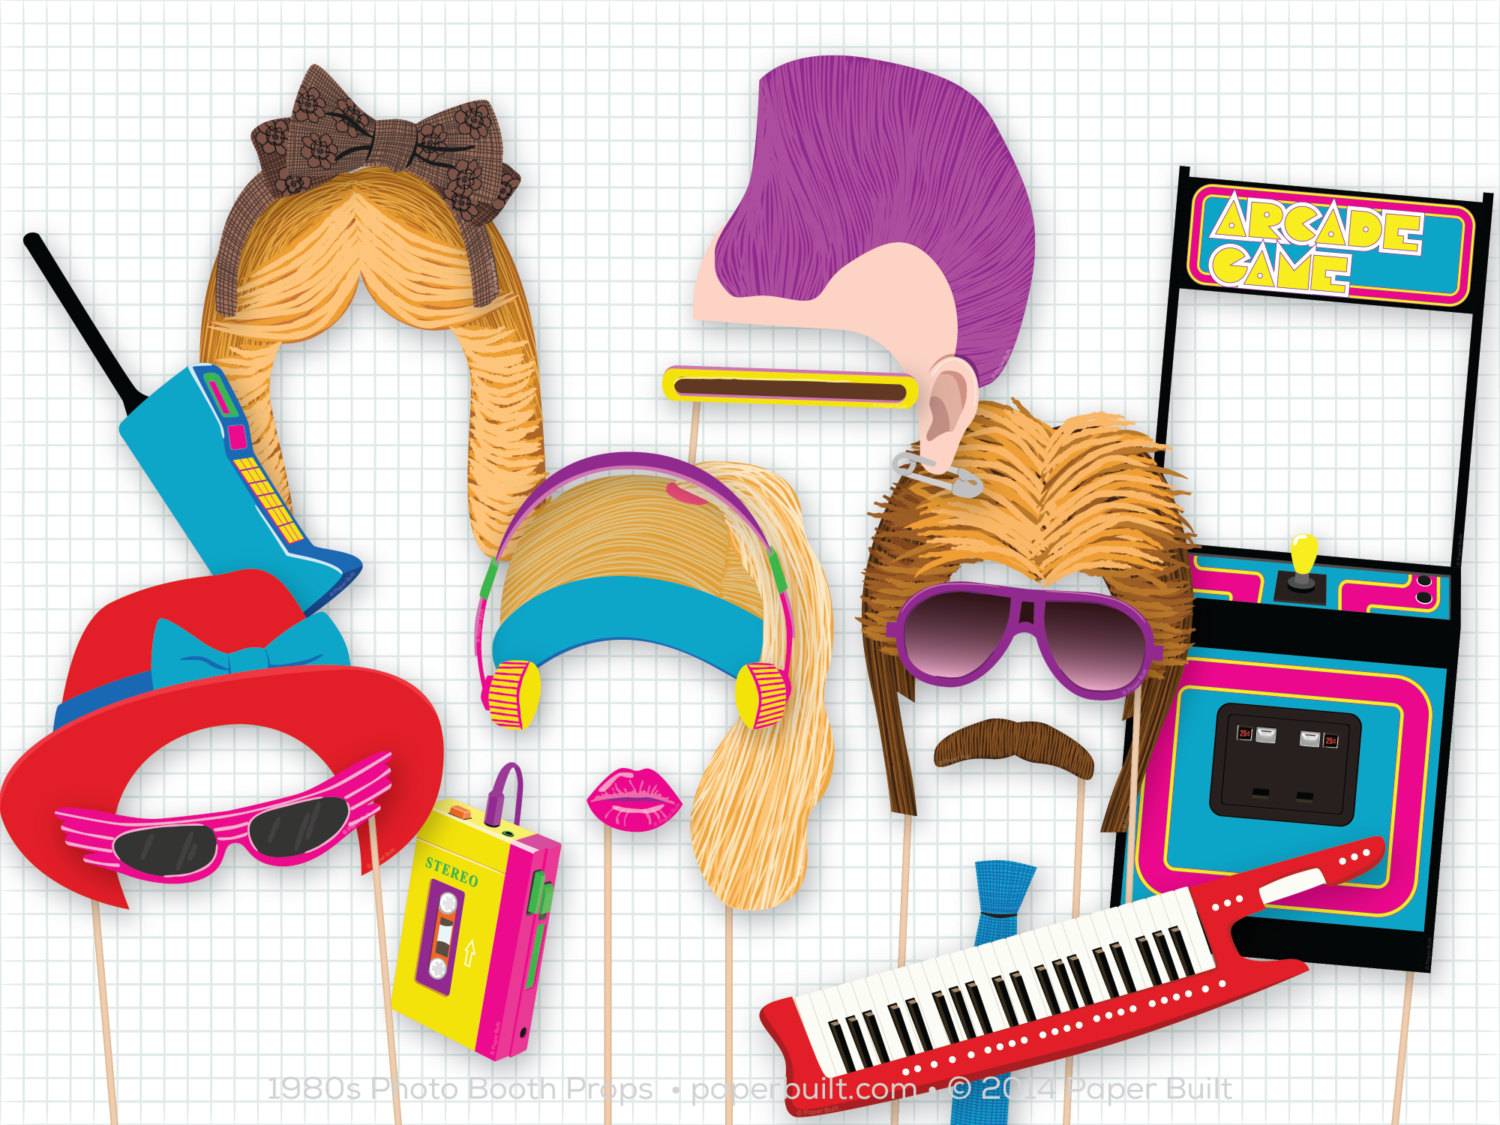 Hair clipart 80's Mullet Photo Props Booth tape